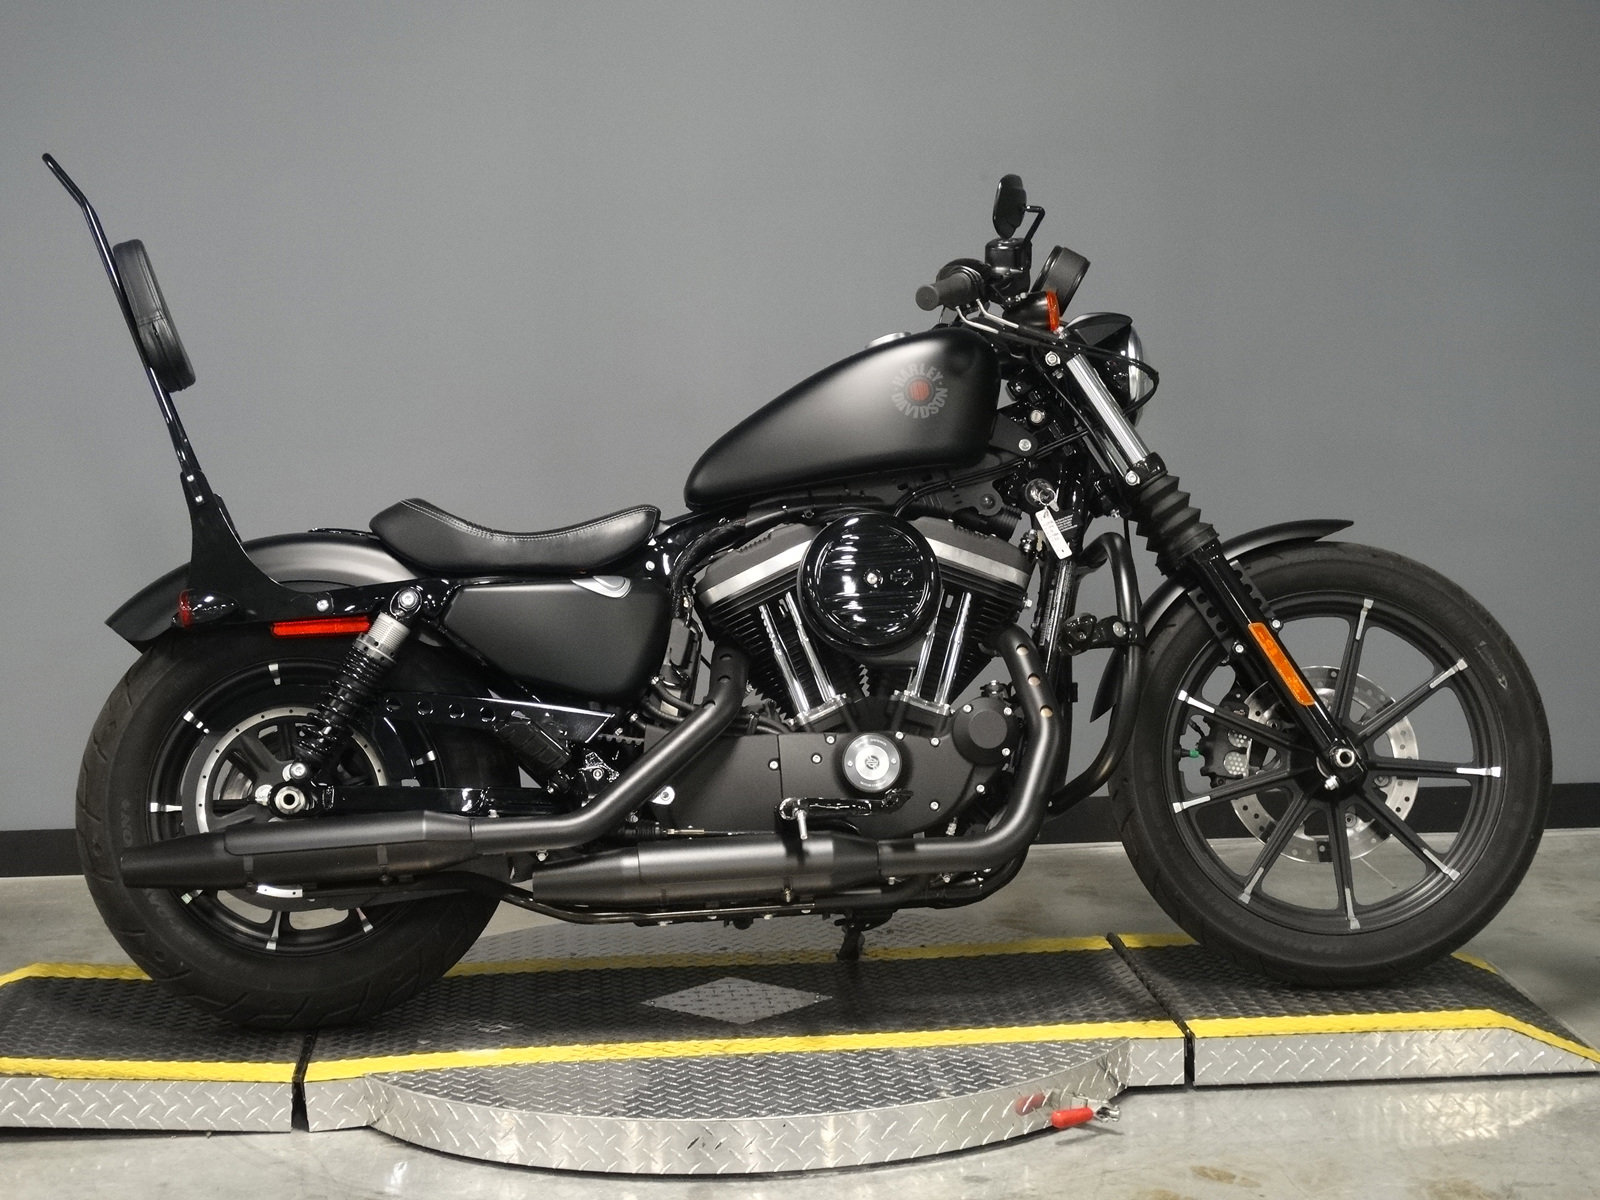 Pre-Owned 2020 Harley-Davidson Street Iron 883 XL883N